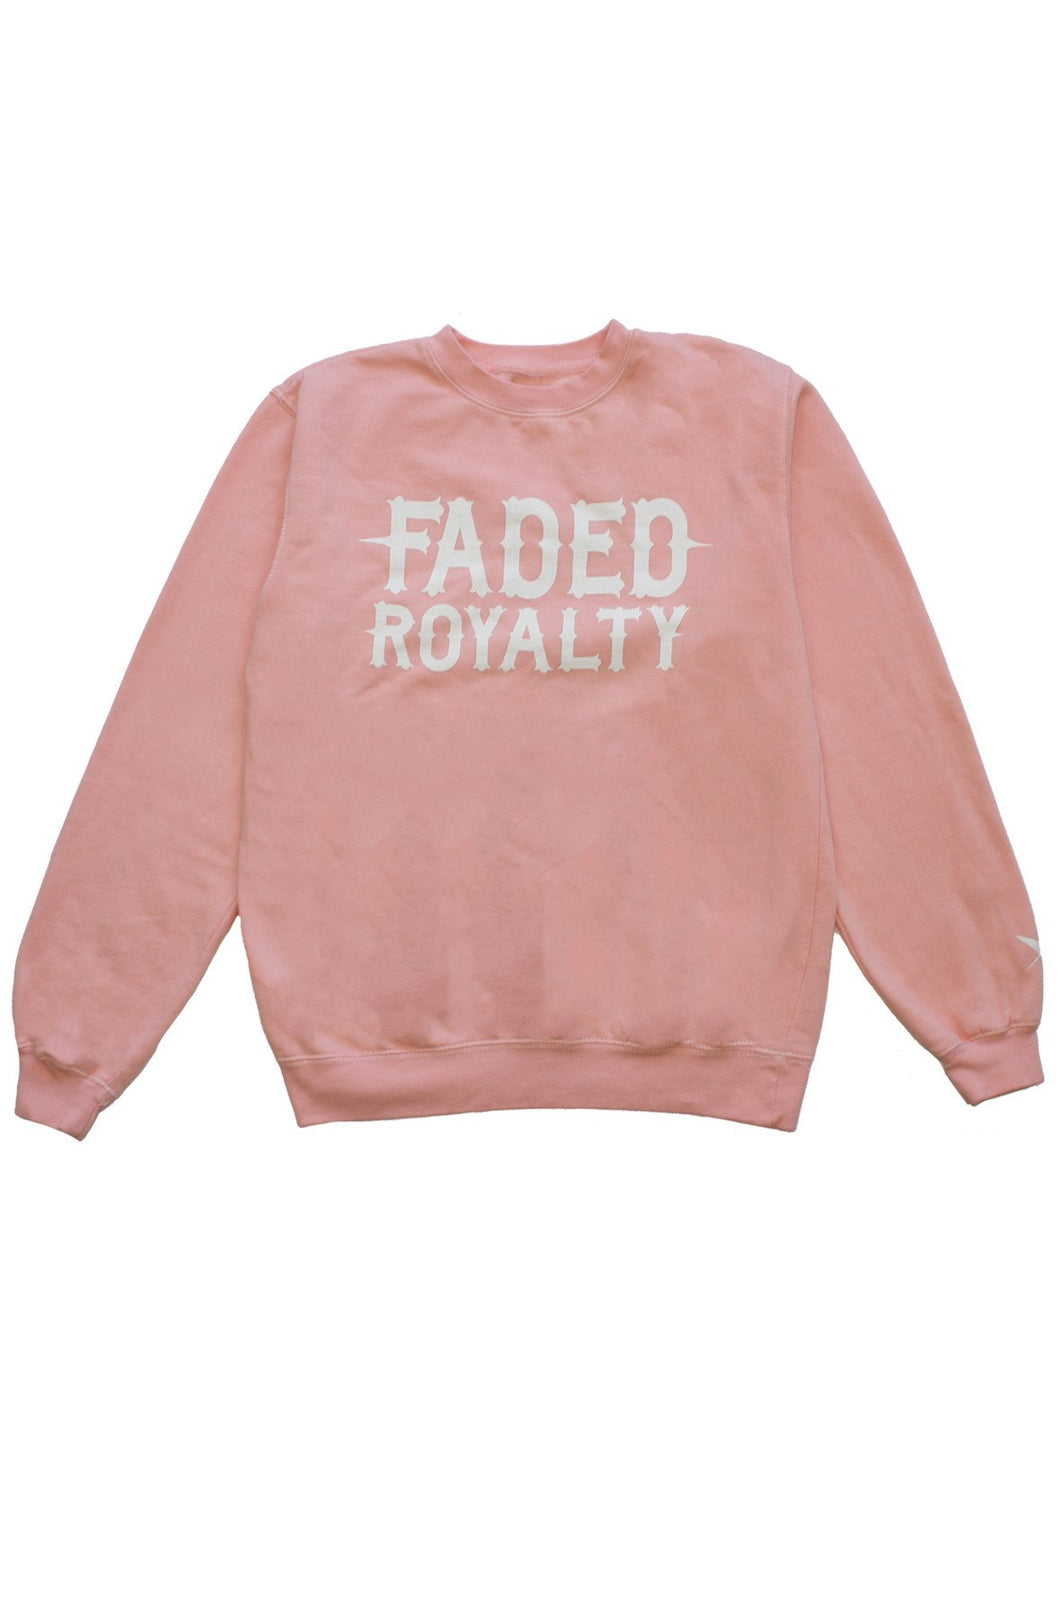 ALL POINTS PINK CREWNECK